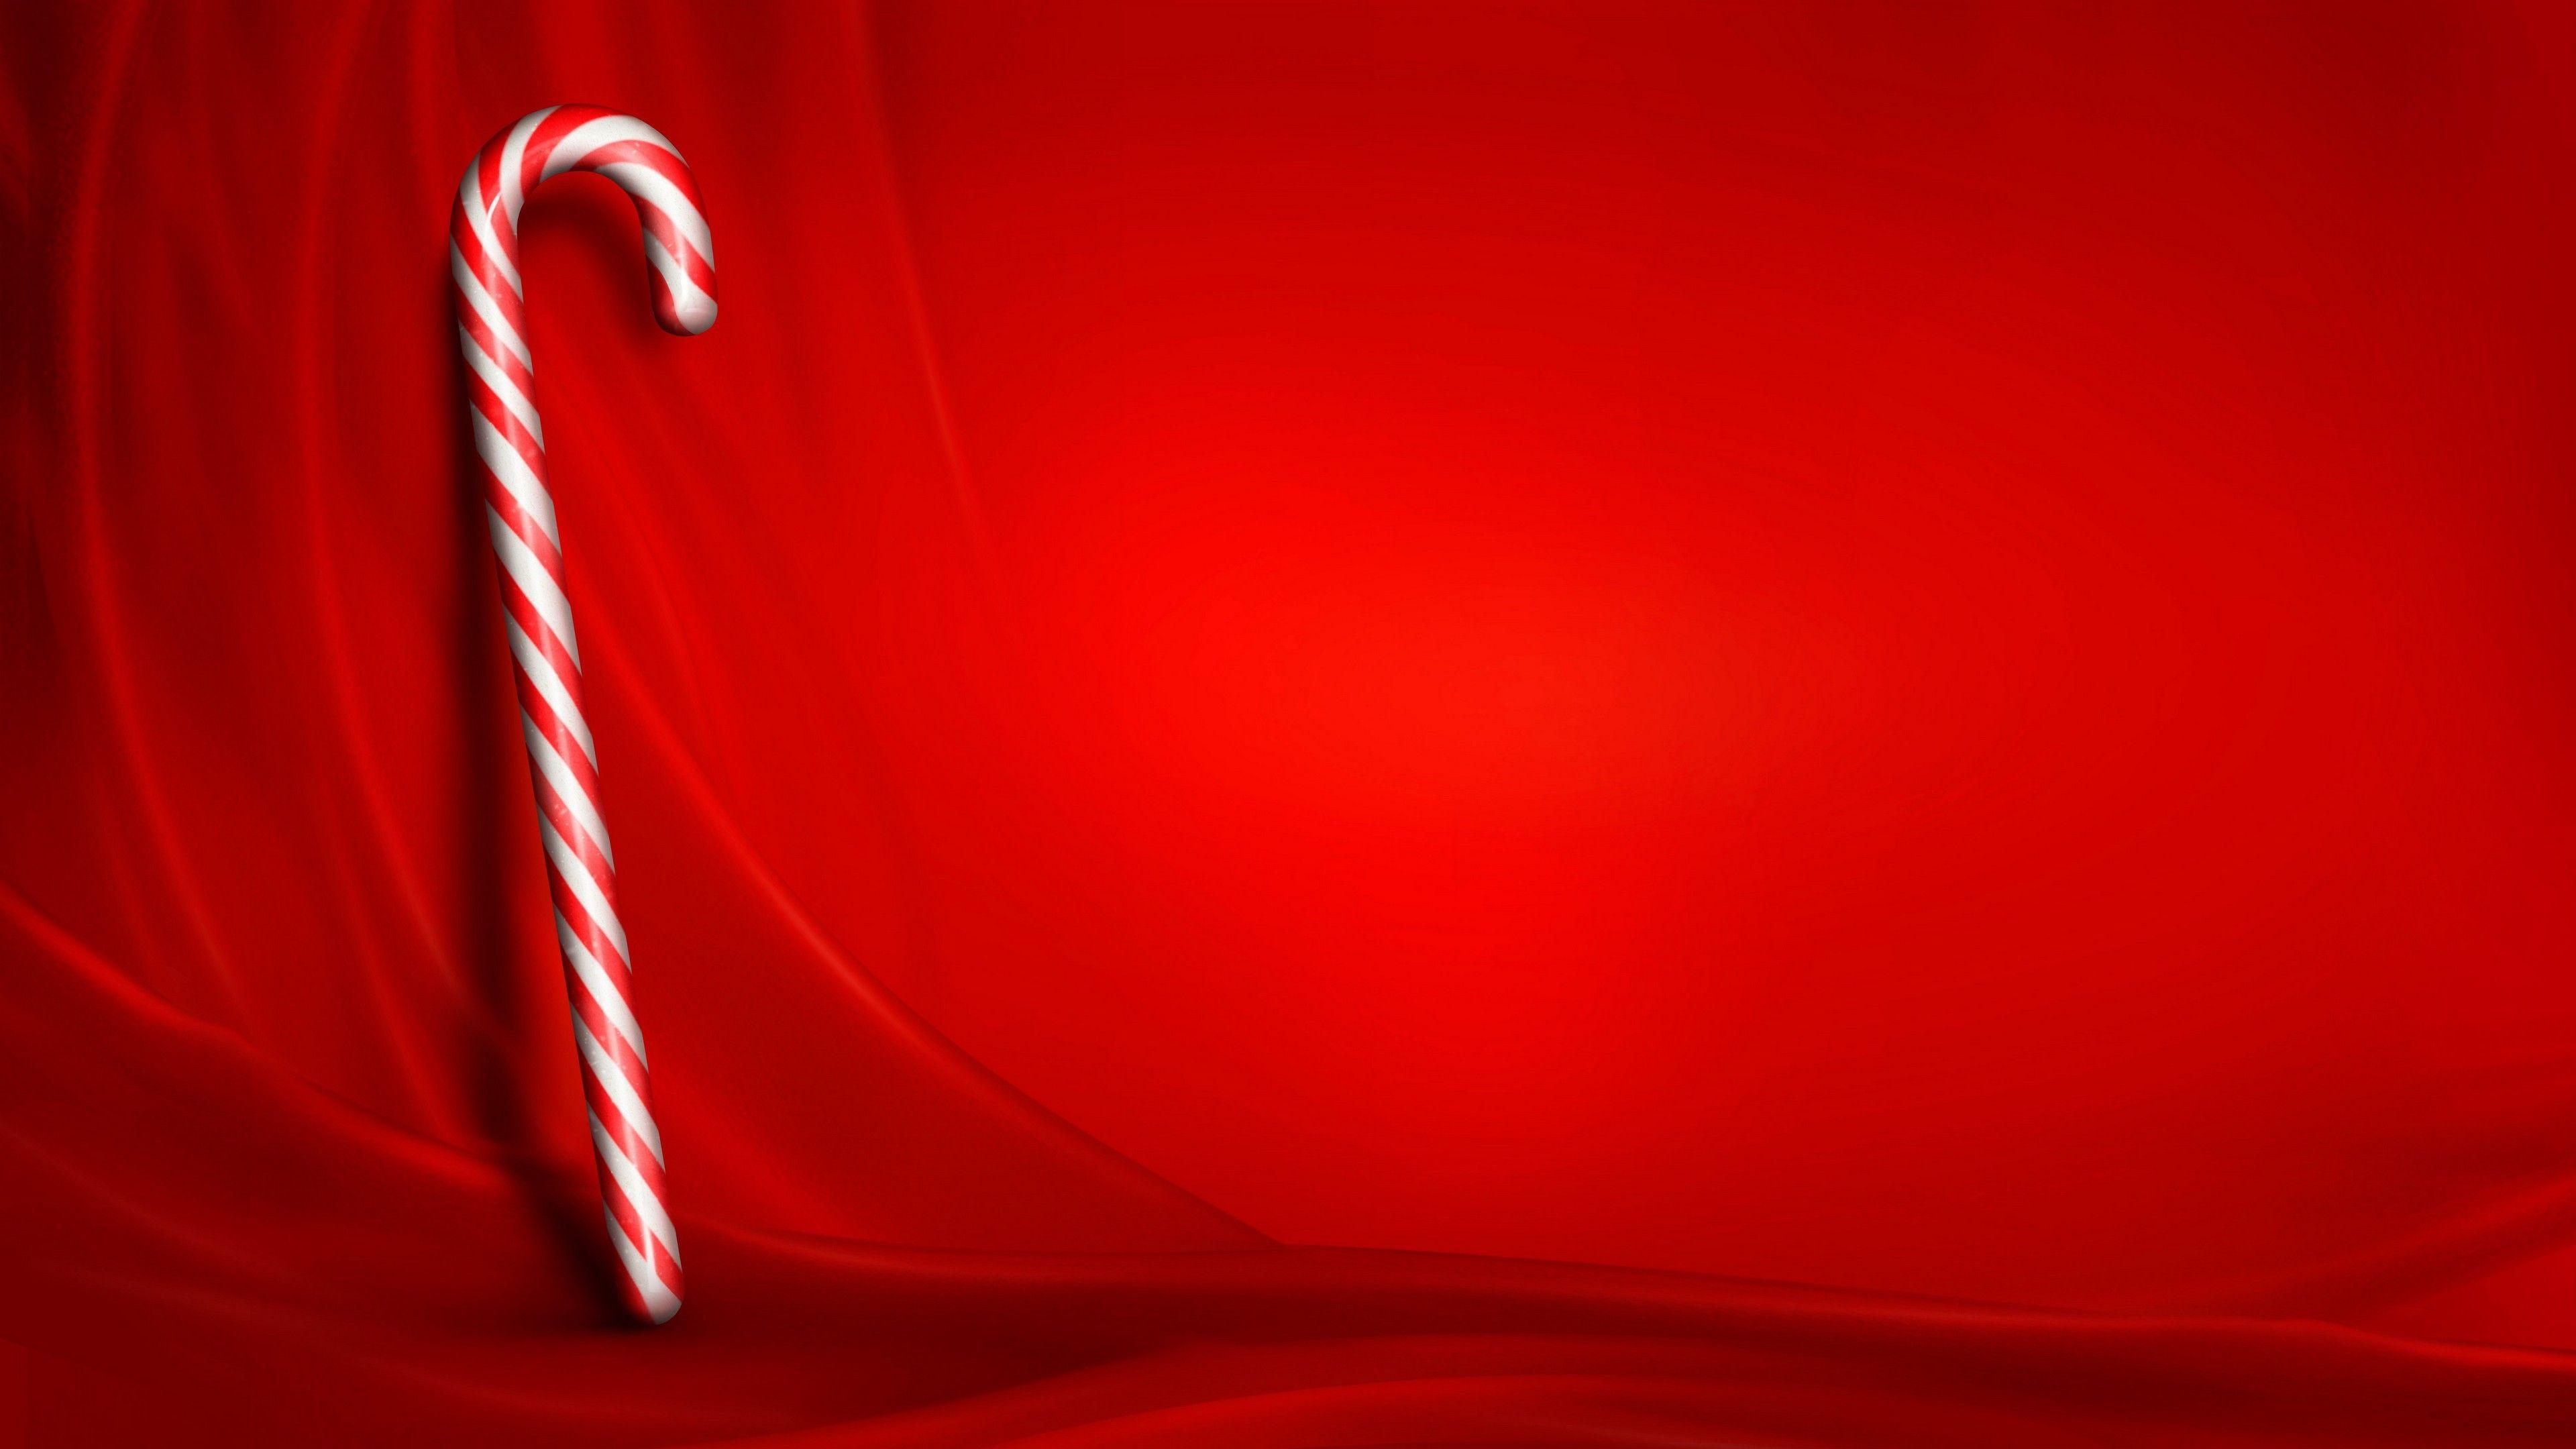 Christmas Candy Cane Wallpapers